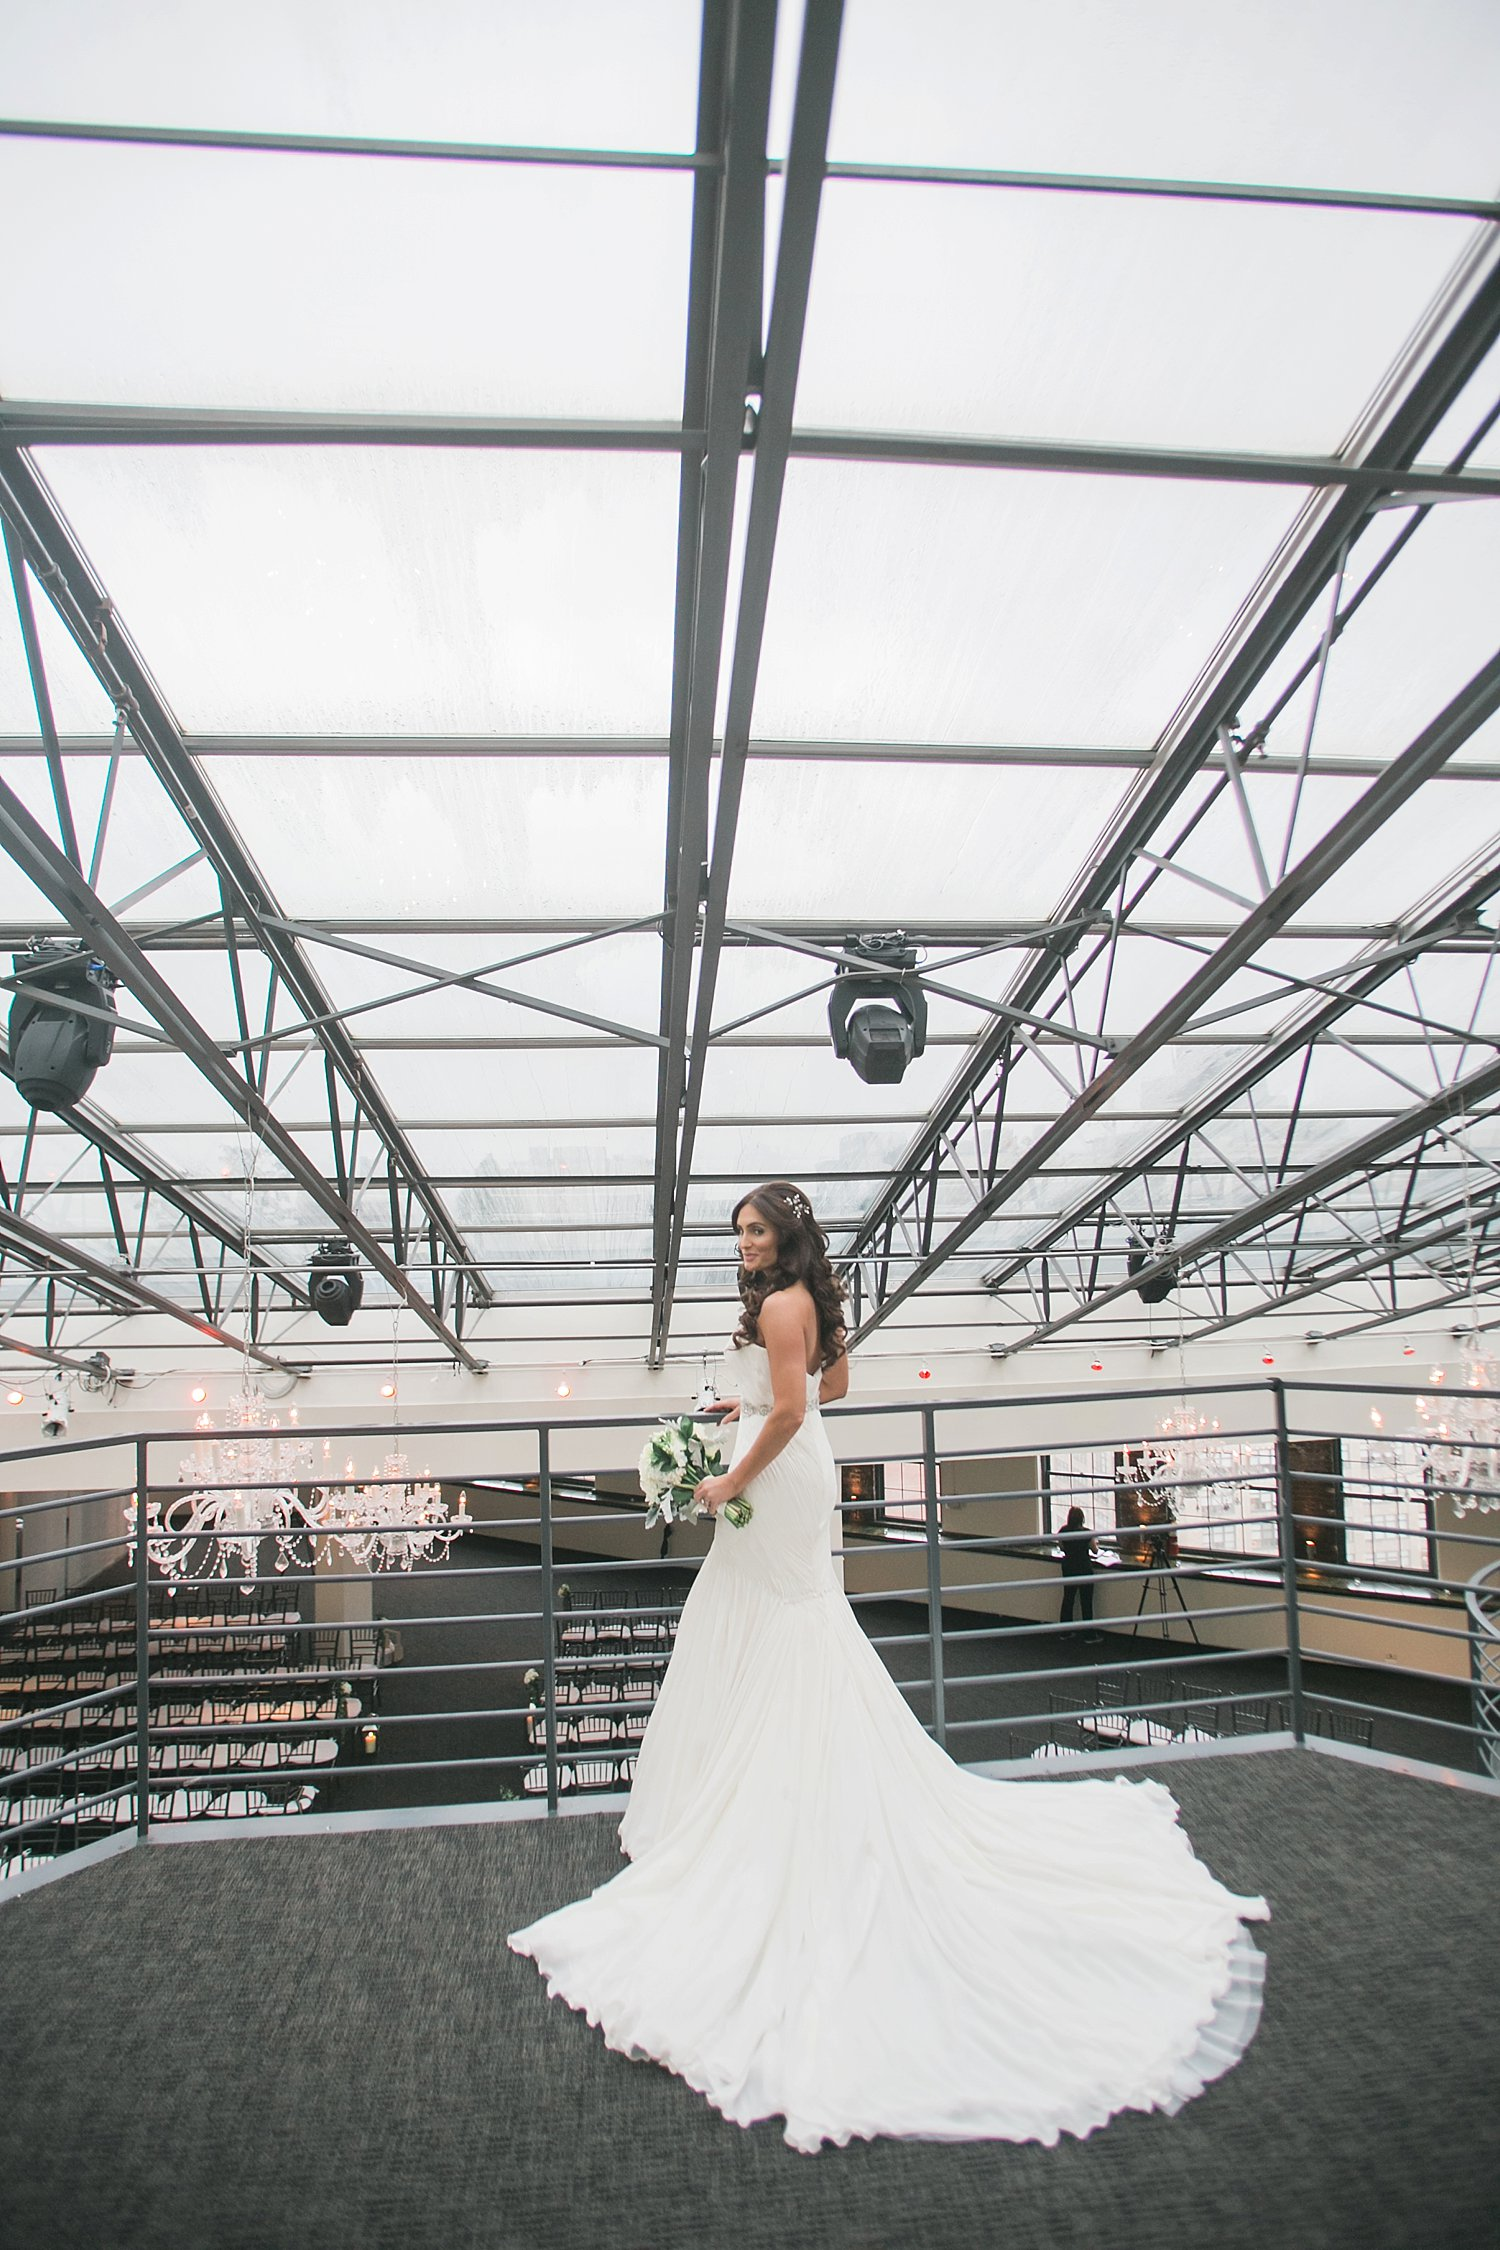 nyc-wedding-photography-nj-tri-state-cinematography-intothestory-by-moo-jae_0208.jpg